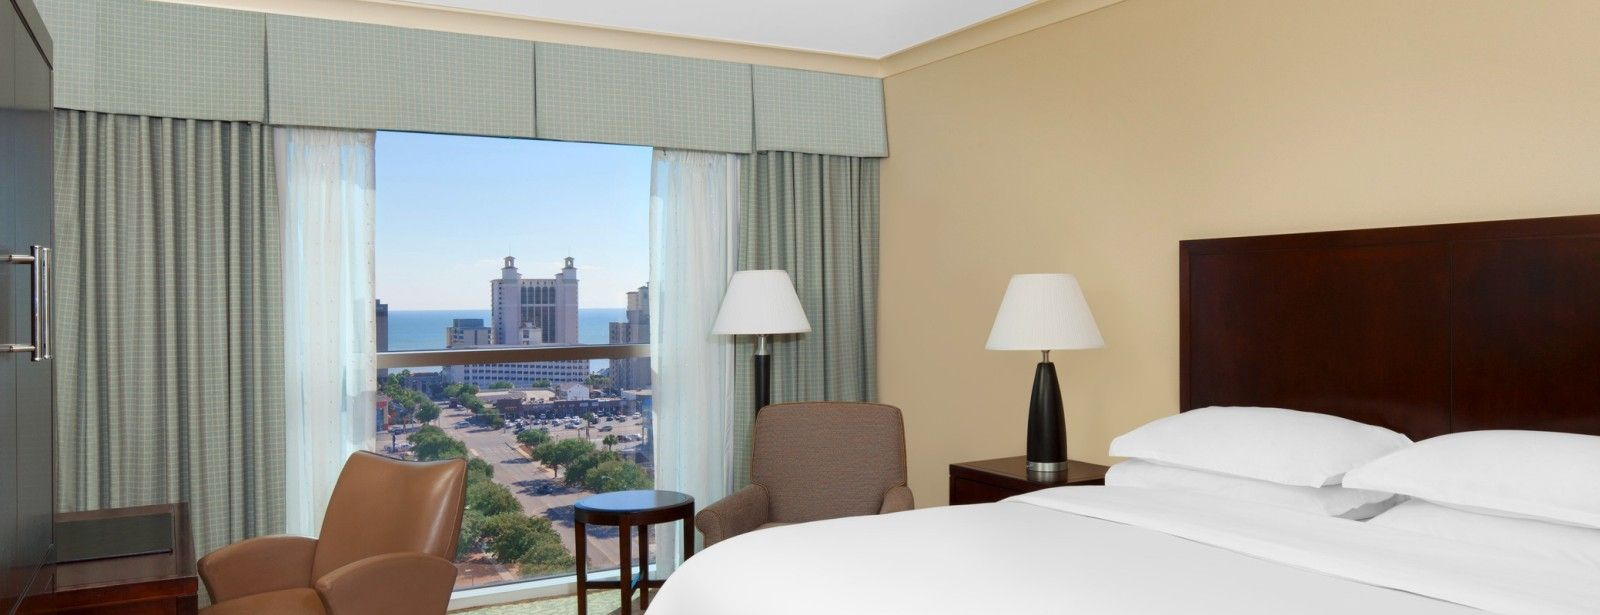 Deluxe Ocean View | Sheraton Myrtle Beach Convention Center Hotel